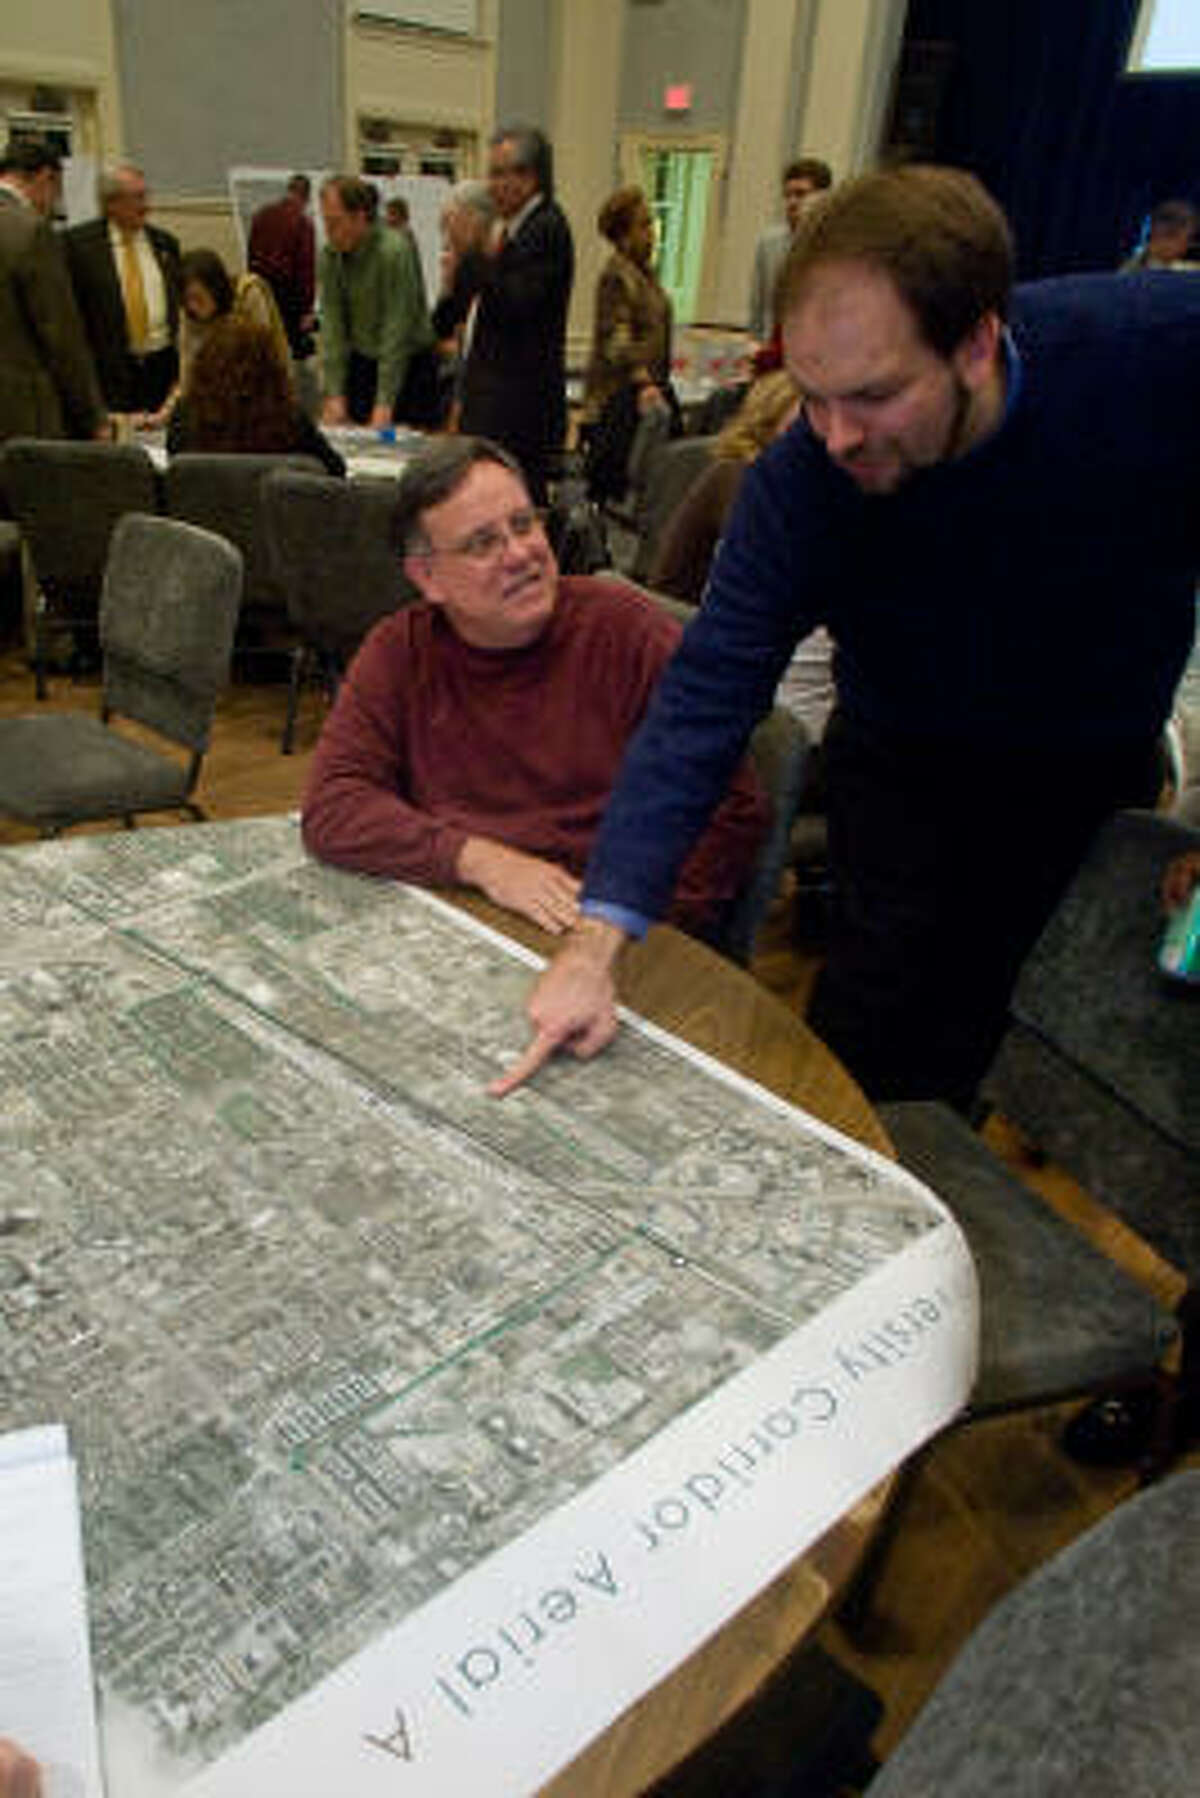 Area resident Mike McMahon, left, and Christof Spieler of the Citizens' Transportation Coalition, discuss development patterns.